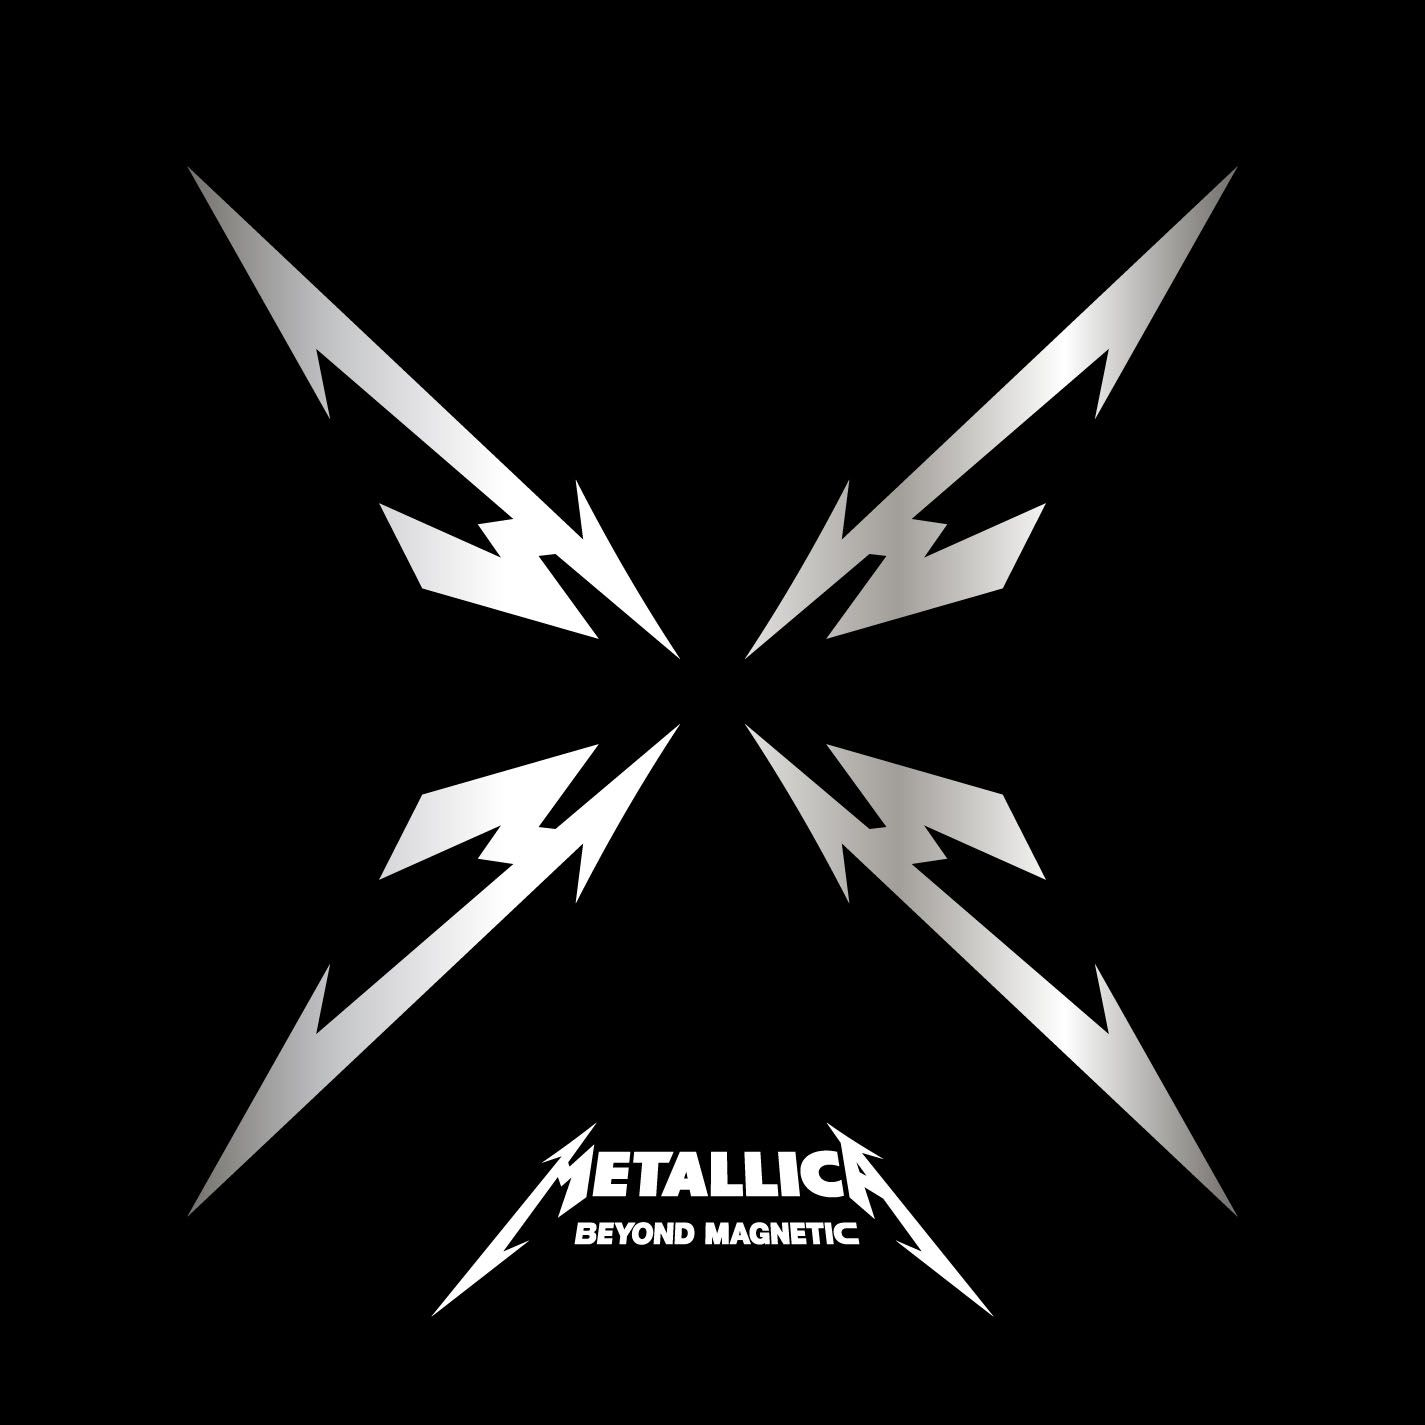 """METALLICA - Beyond Magnetic (LP) - - - Tracks: (1) Hate Train   (2) Just a Bullet Away   (3) Hell and Back   (4) Rebel of Babylon - - - Versione in vinile dell'EP """"Beyond Magnetic"""""""